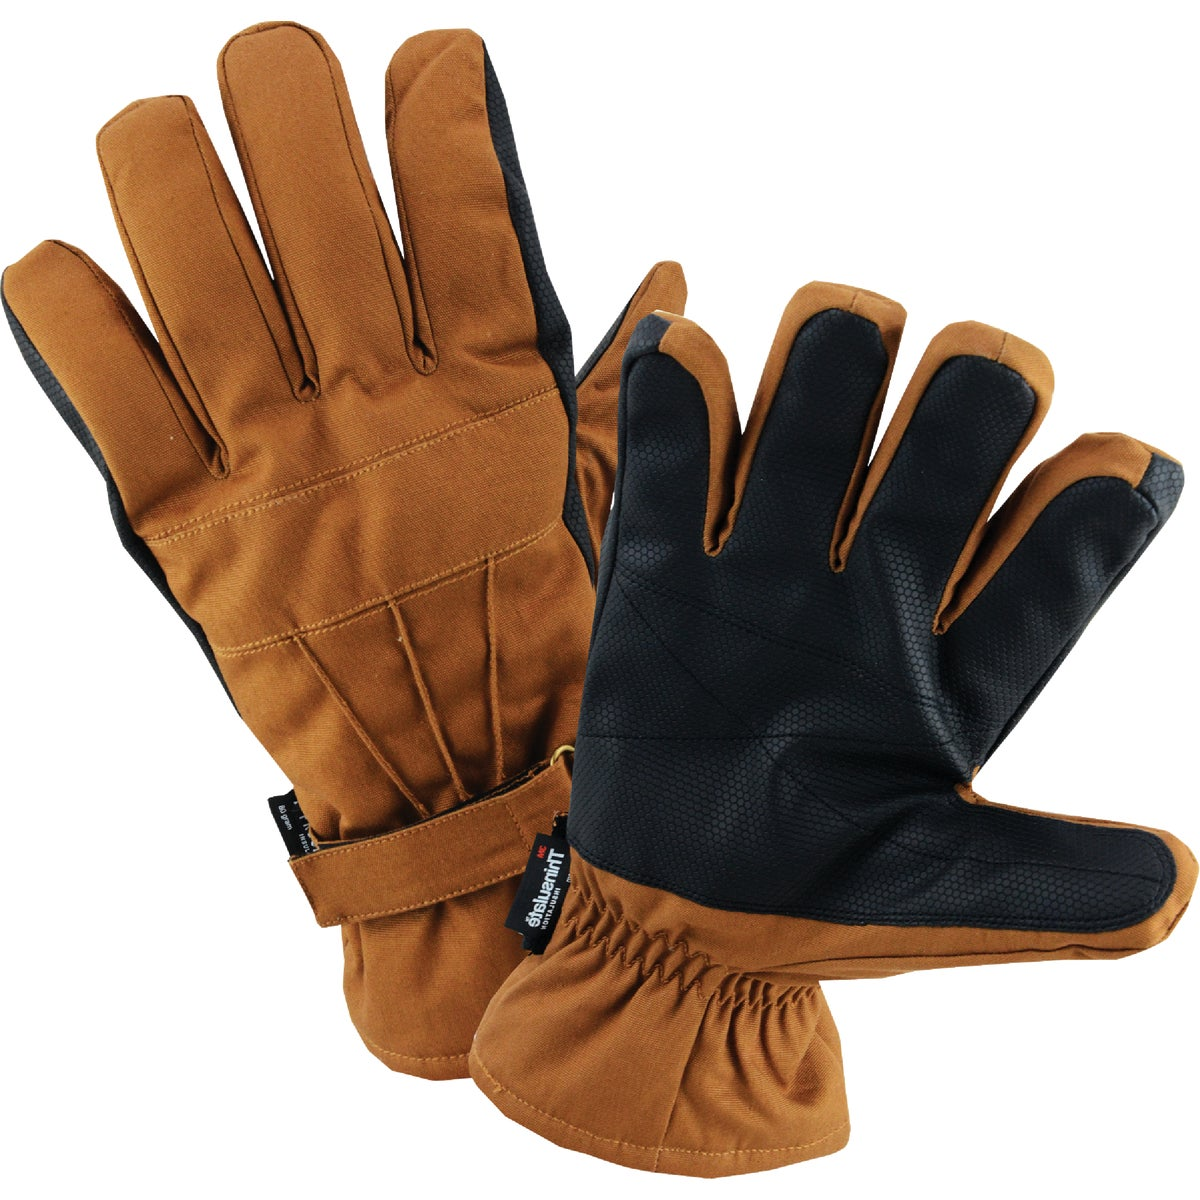 XL COLDWTHR DUCK GLOVE - 1075XL by Wells Lamont